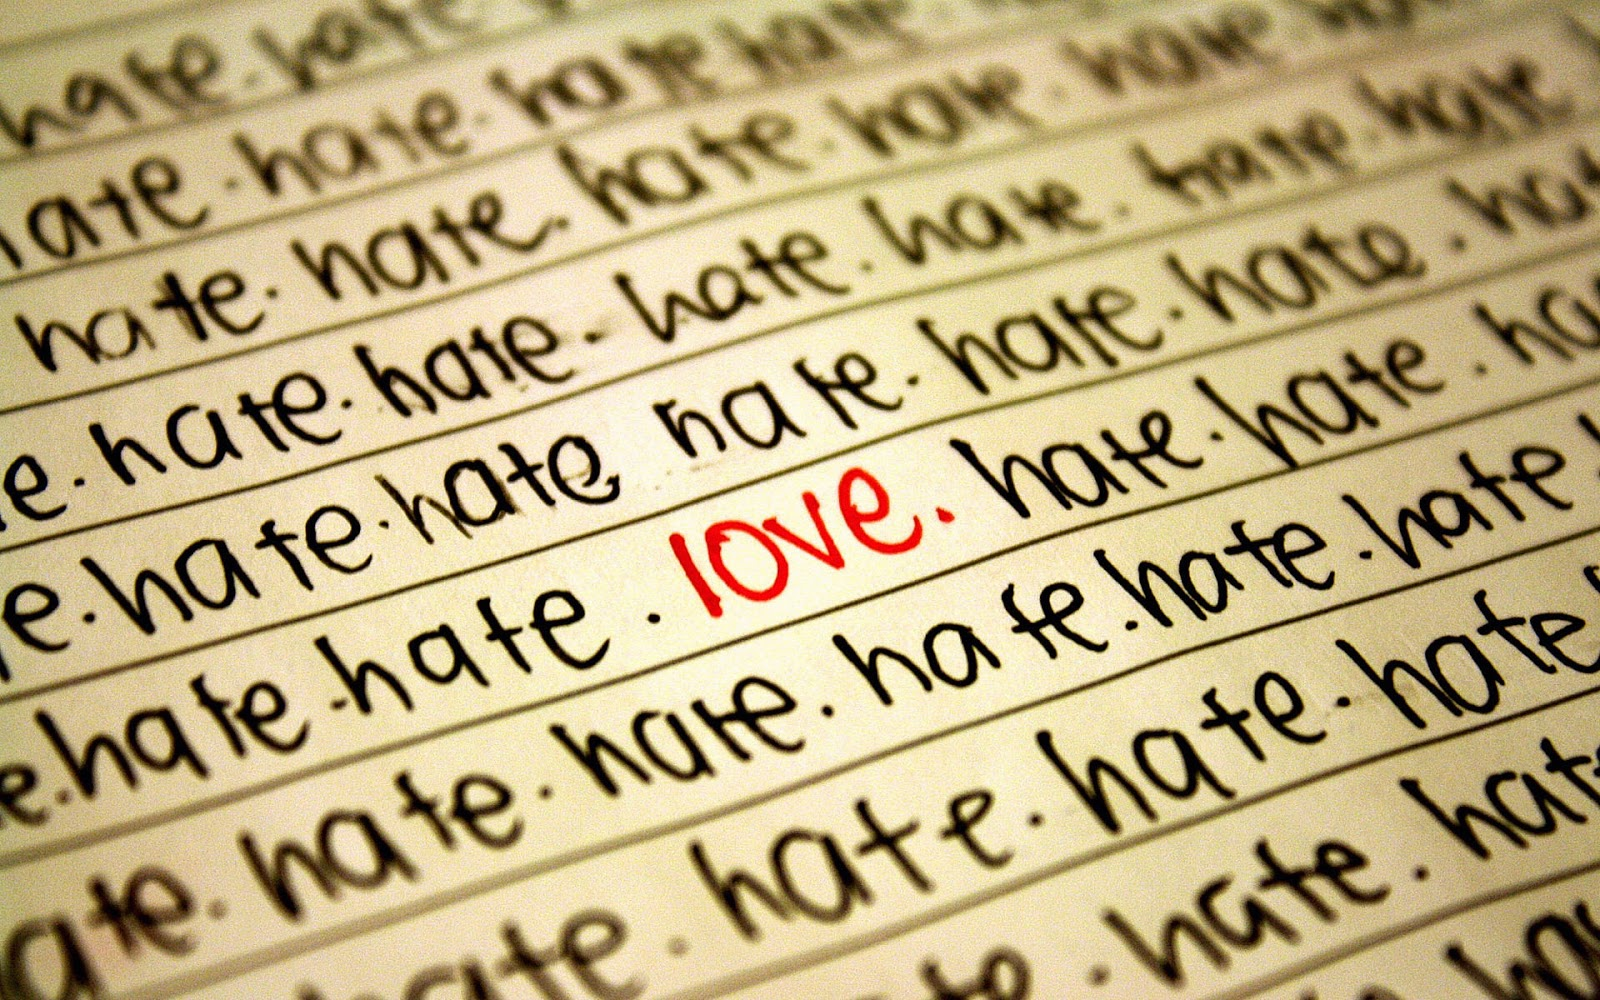 I Hate love text against lovers pictures images